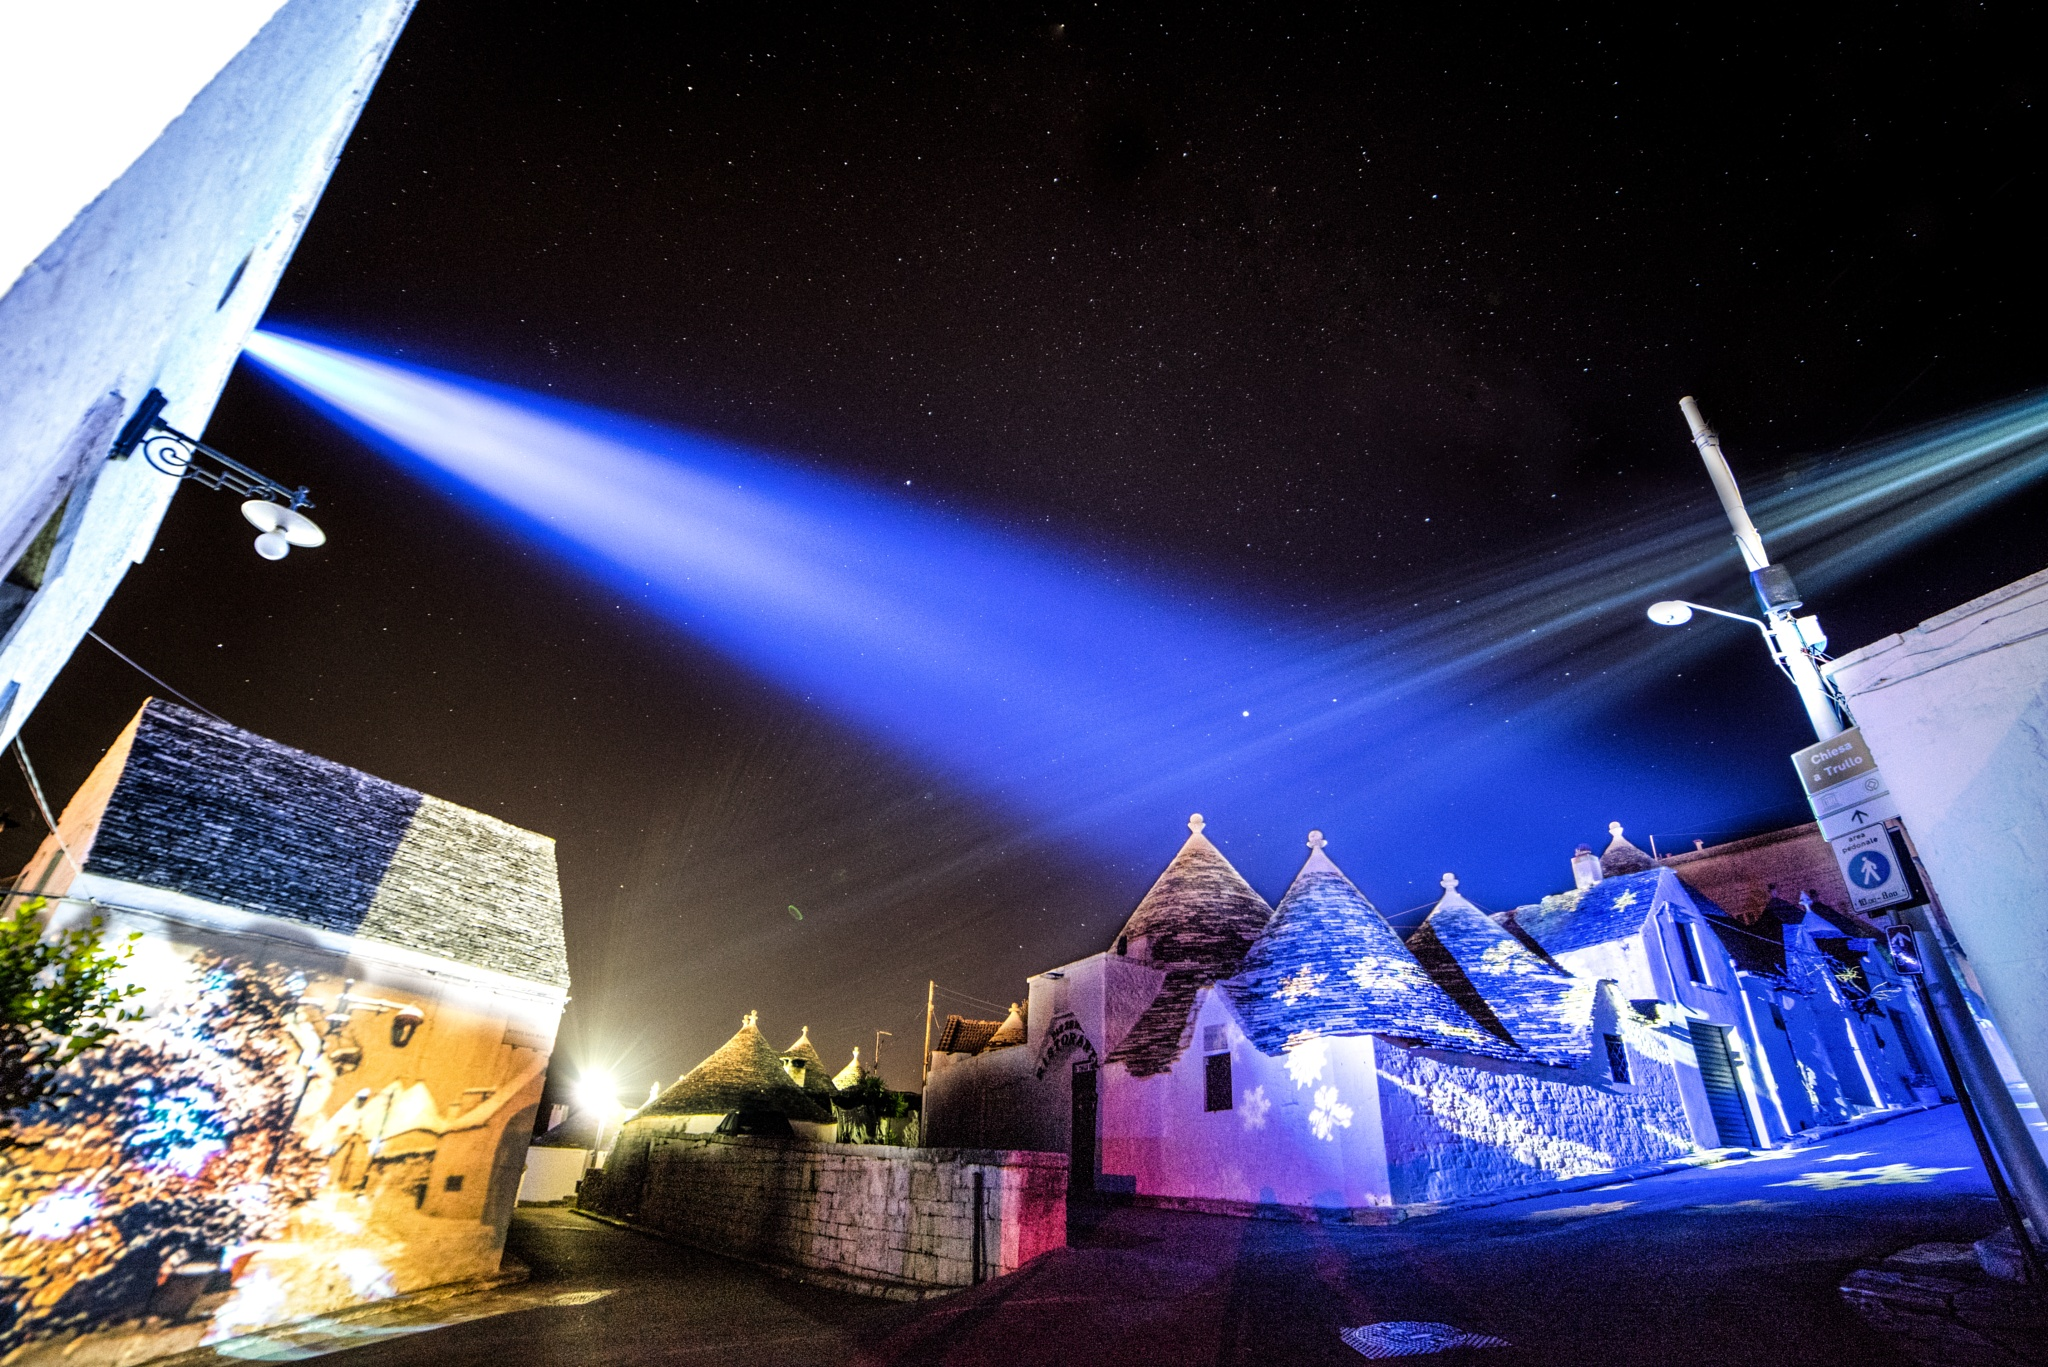 Christmas Show by antonelloleophotography